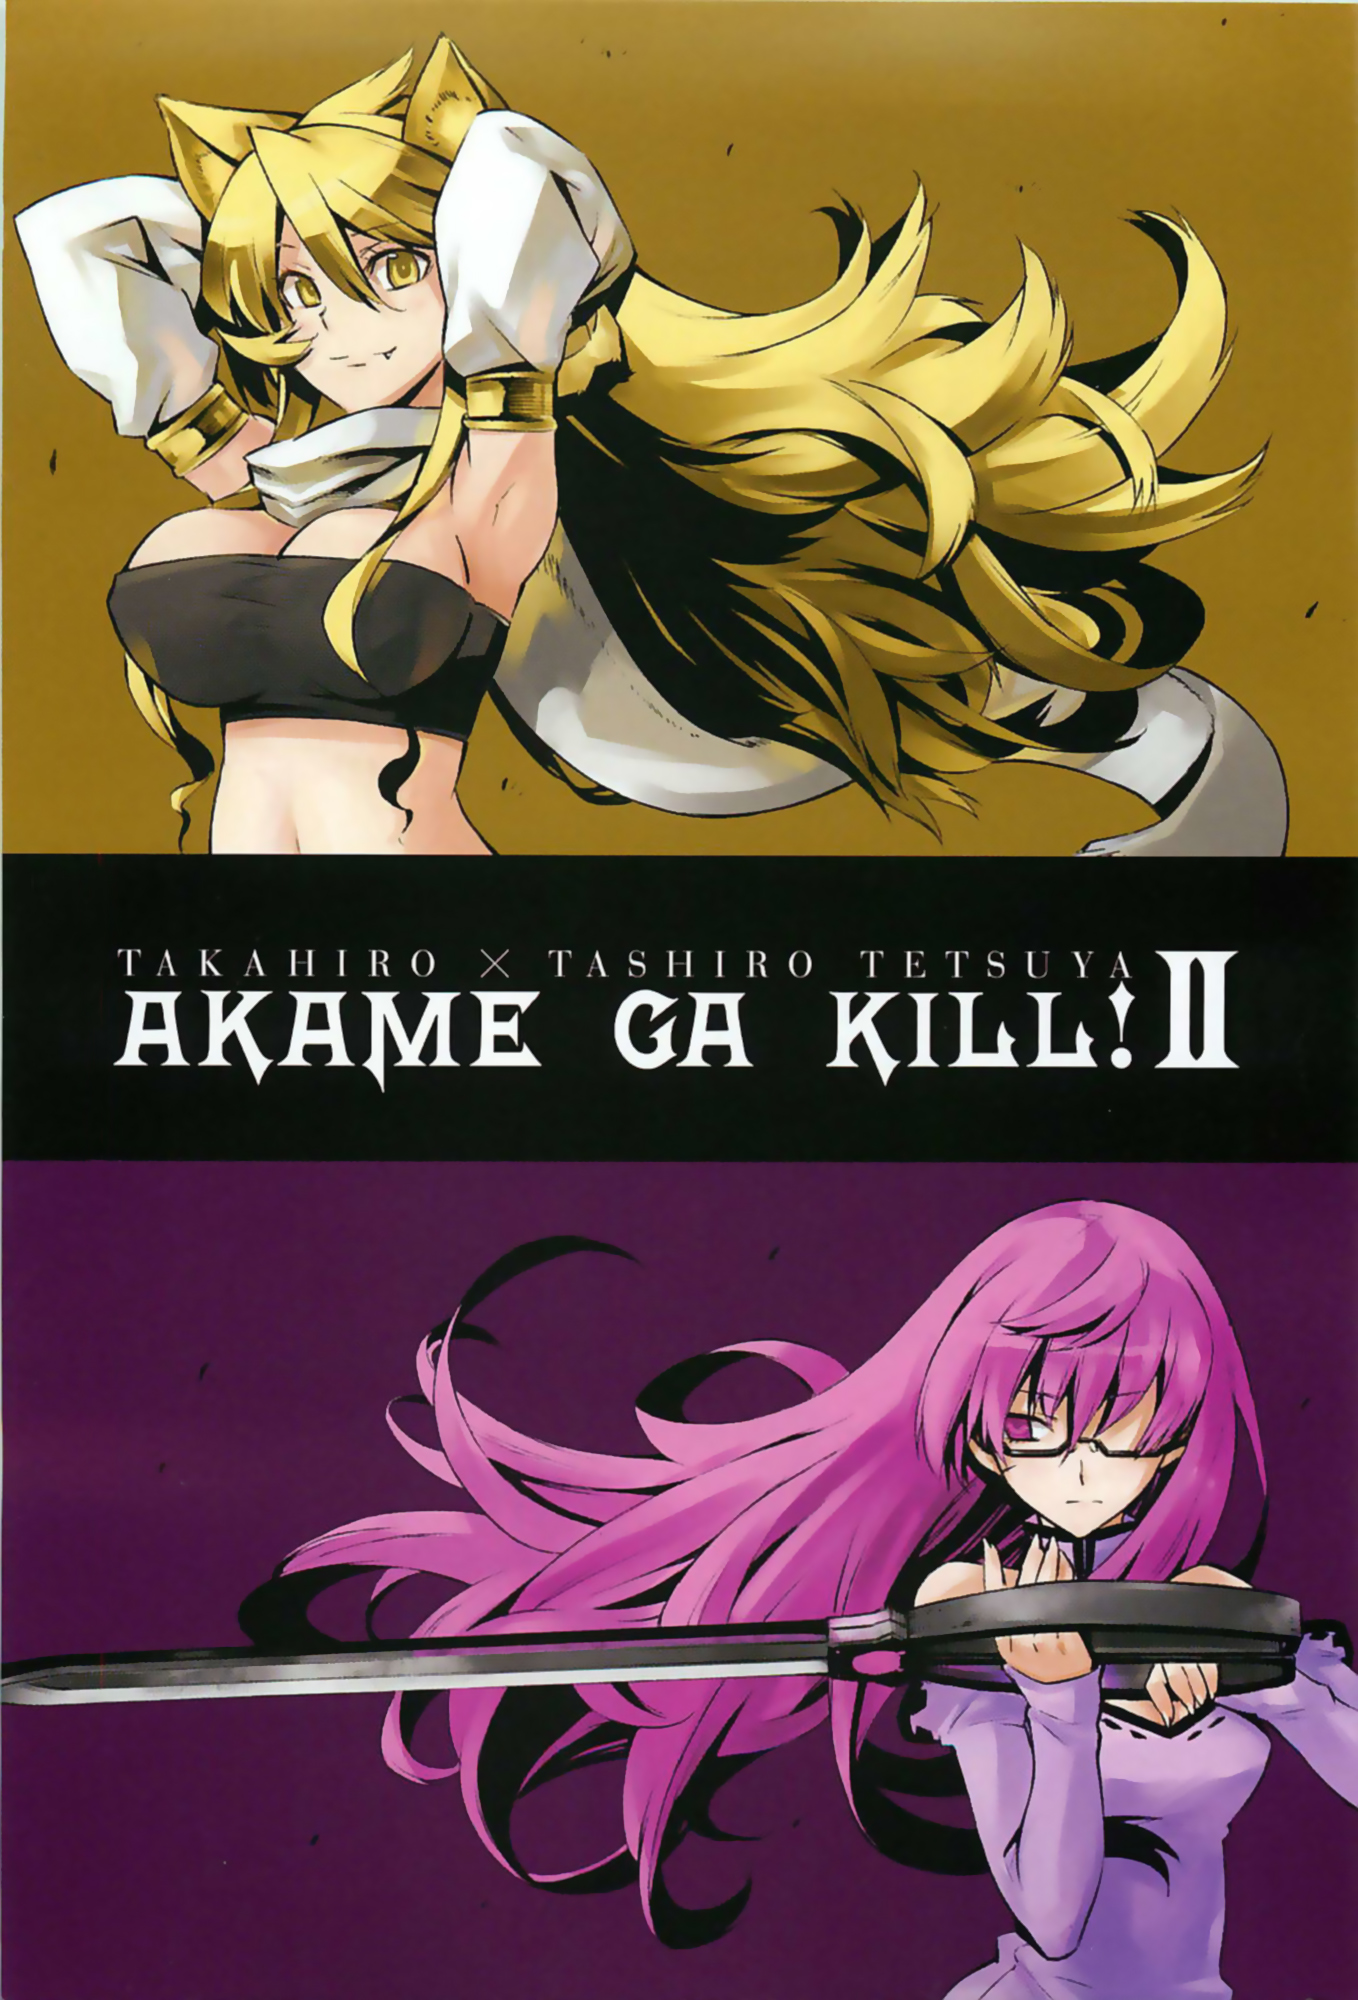 Akame Ga Kill Mobile Wallpaper 1742614 Zerochan Anime Image Board